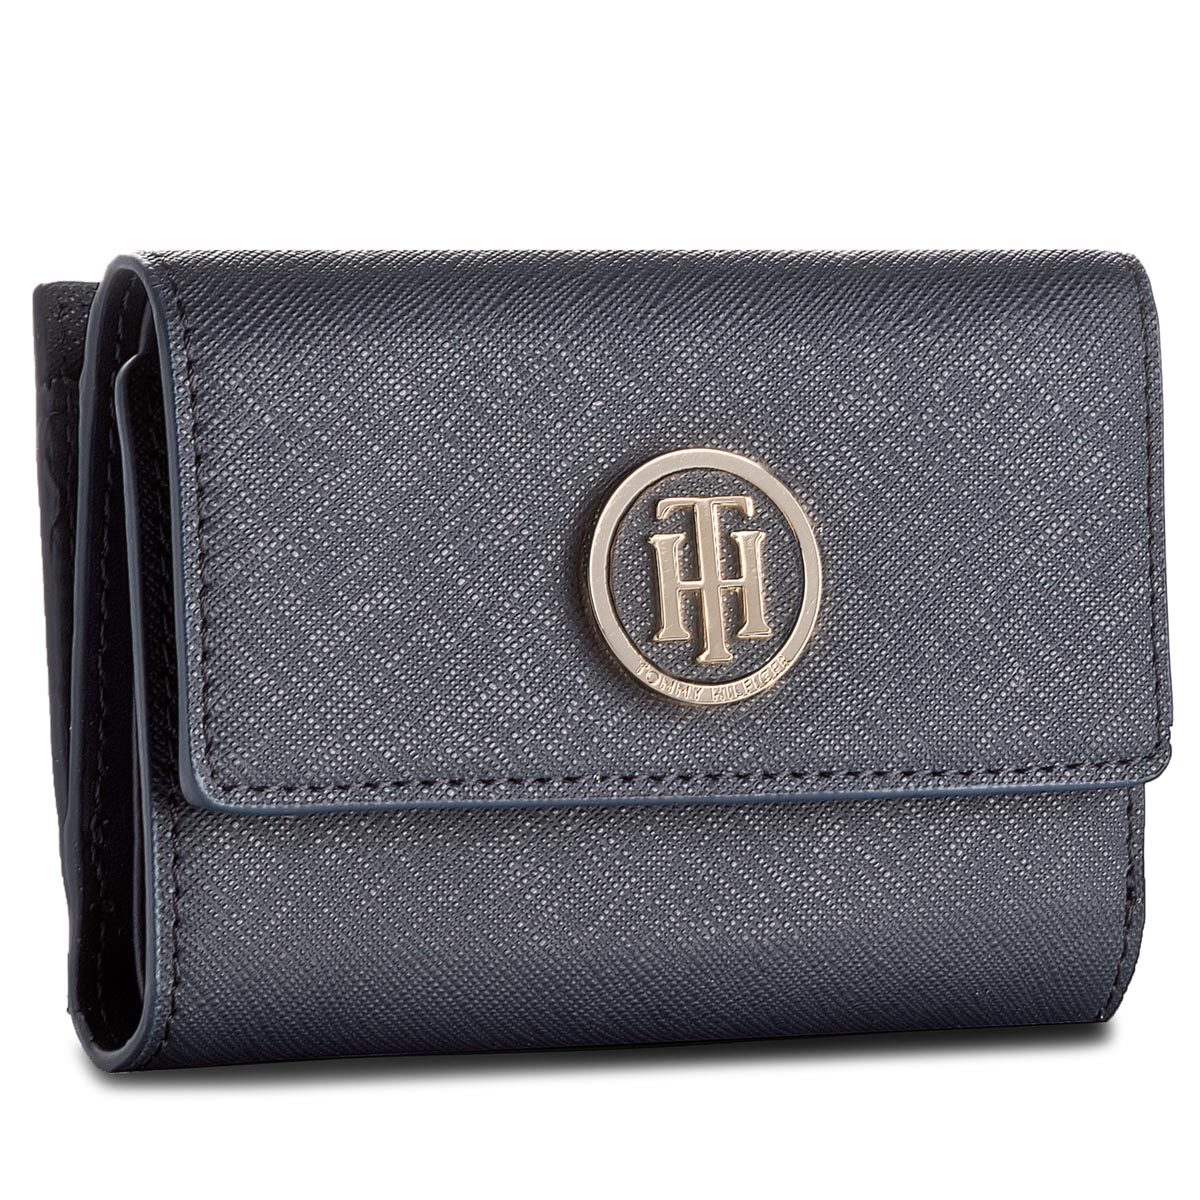 cd659fef9a34c Mały Portfel Damski TOMMY HILFIGER - Honey Med Flap Wallet AW0AW05197 906